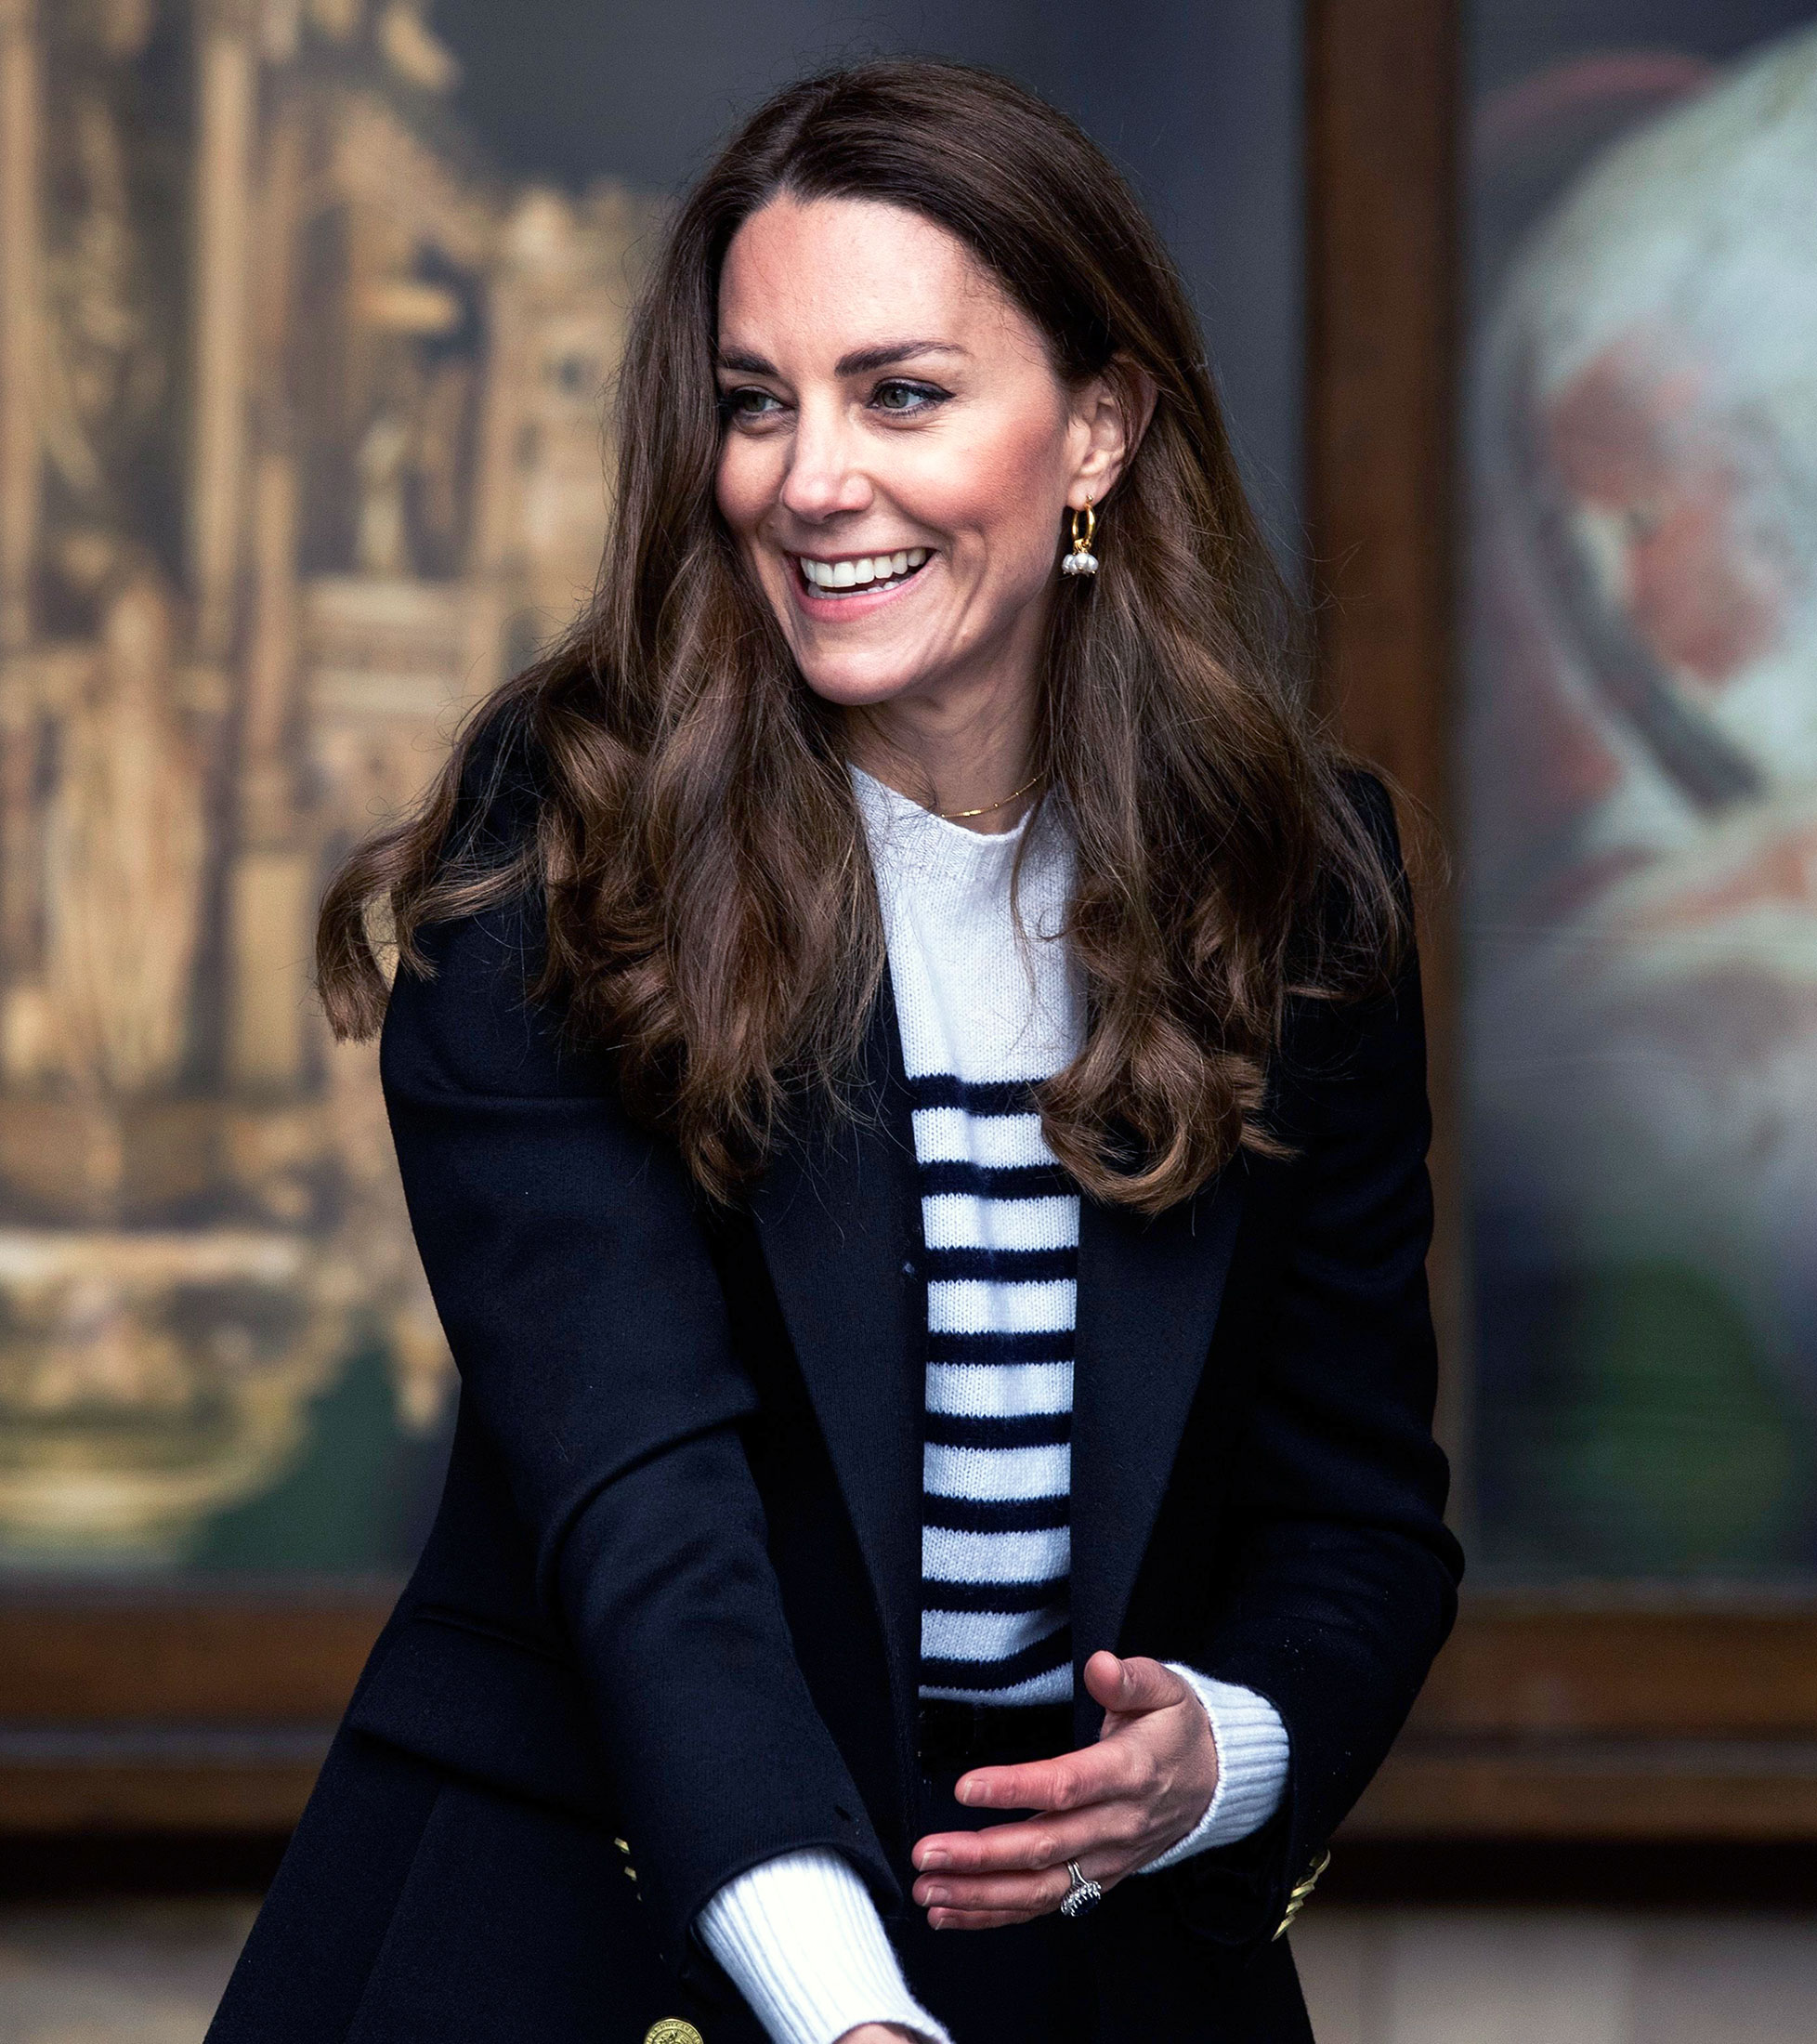 Duchess Kate's Preppy Suit Is a Major Contrast to Her St. Andrews' Student Style